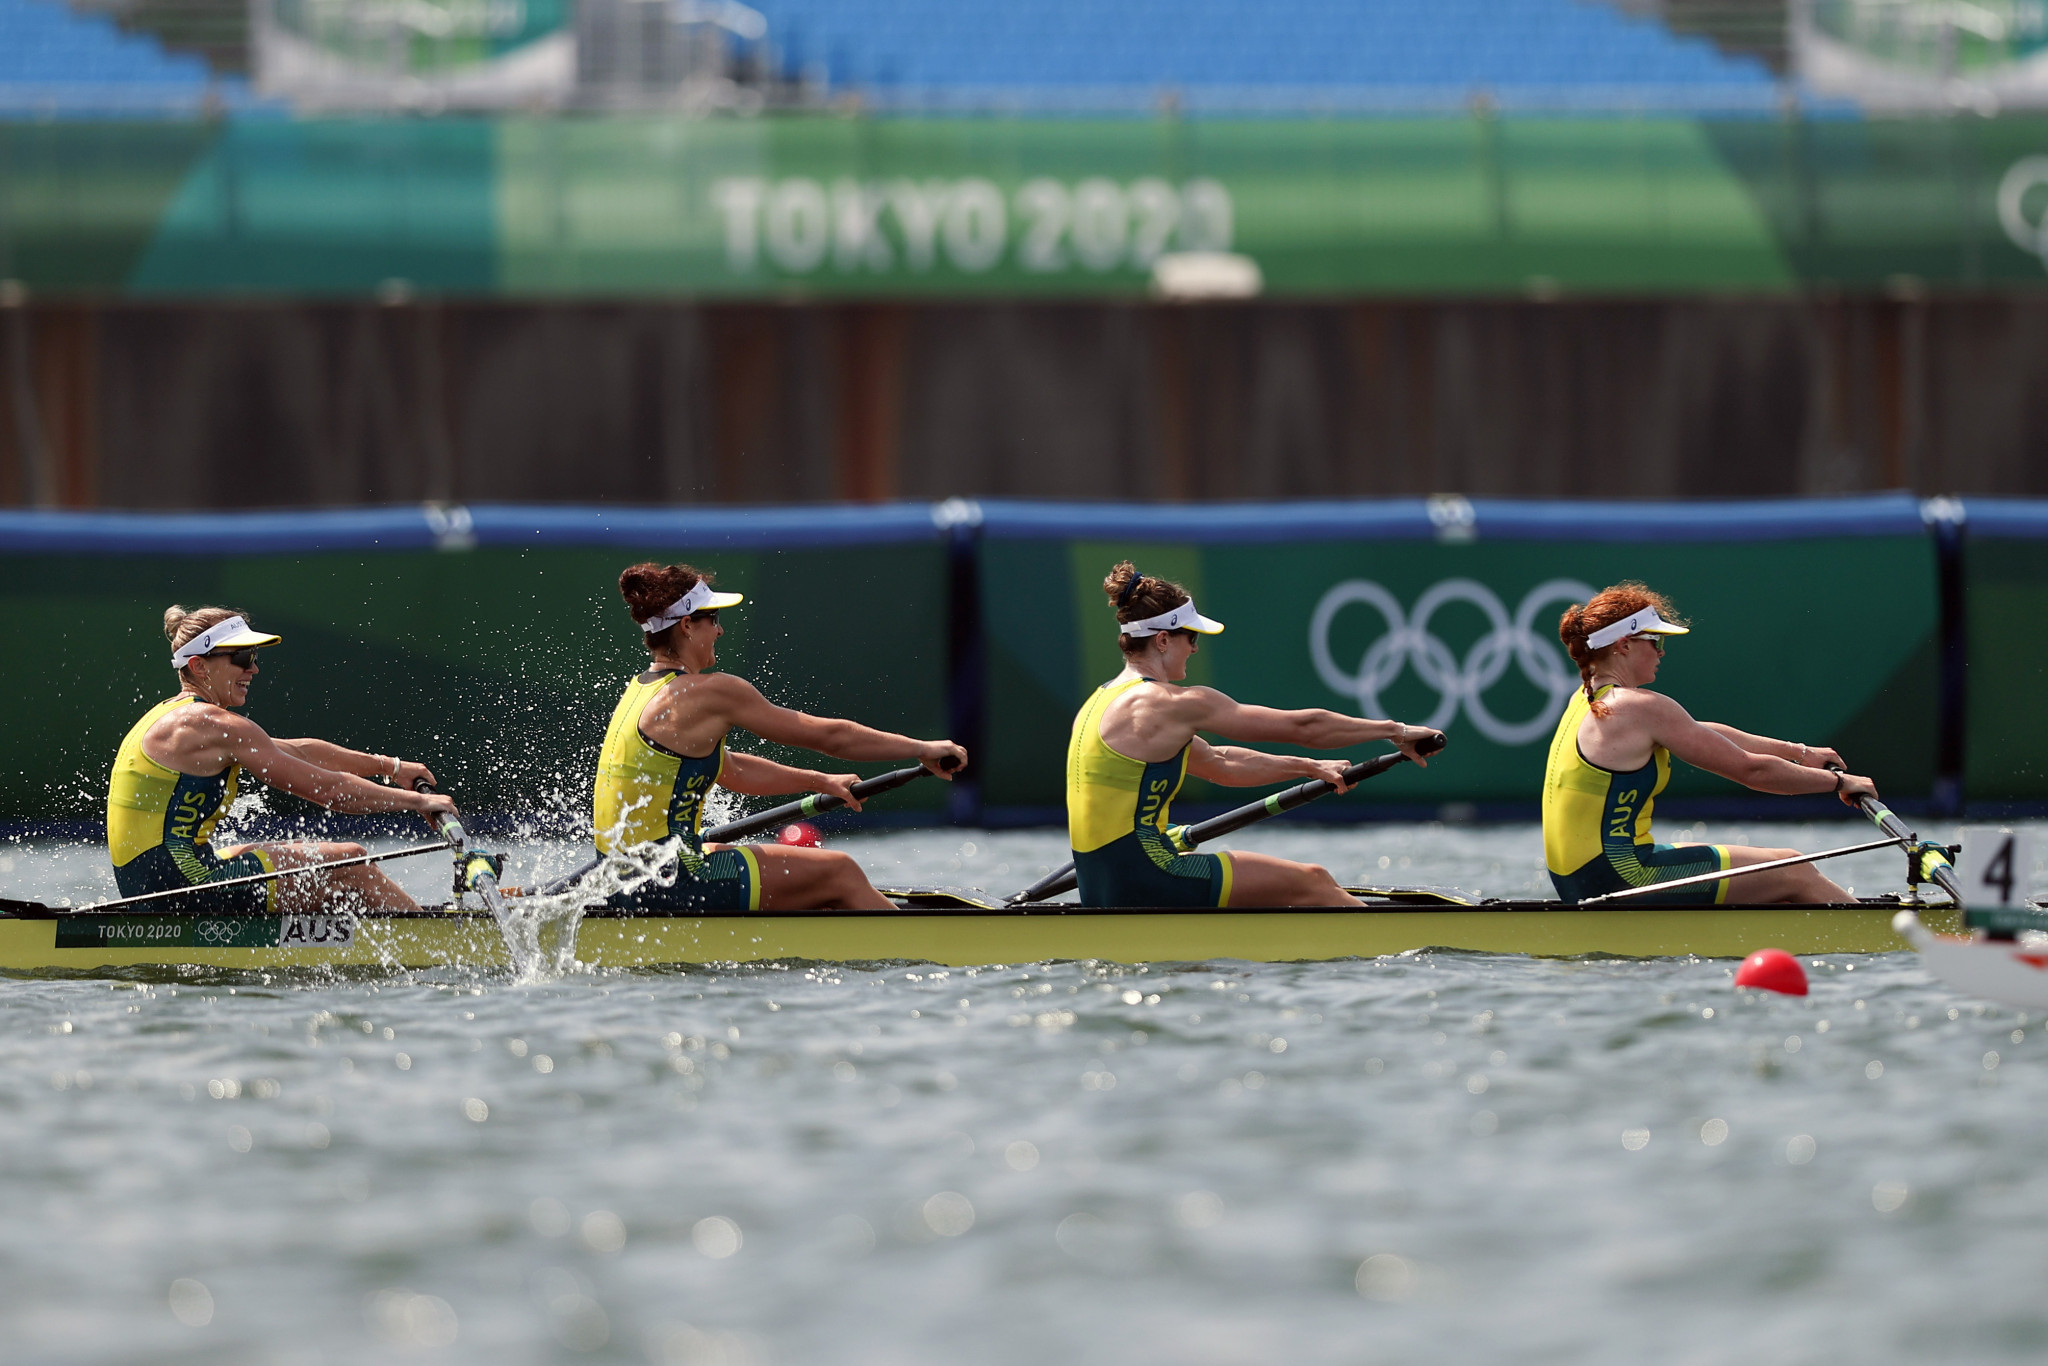 The first rowing finals were held and Australia's women's coxless four were among the winners - as were the country's men's coxless four ©Getty Images